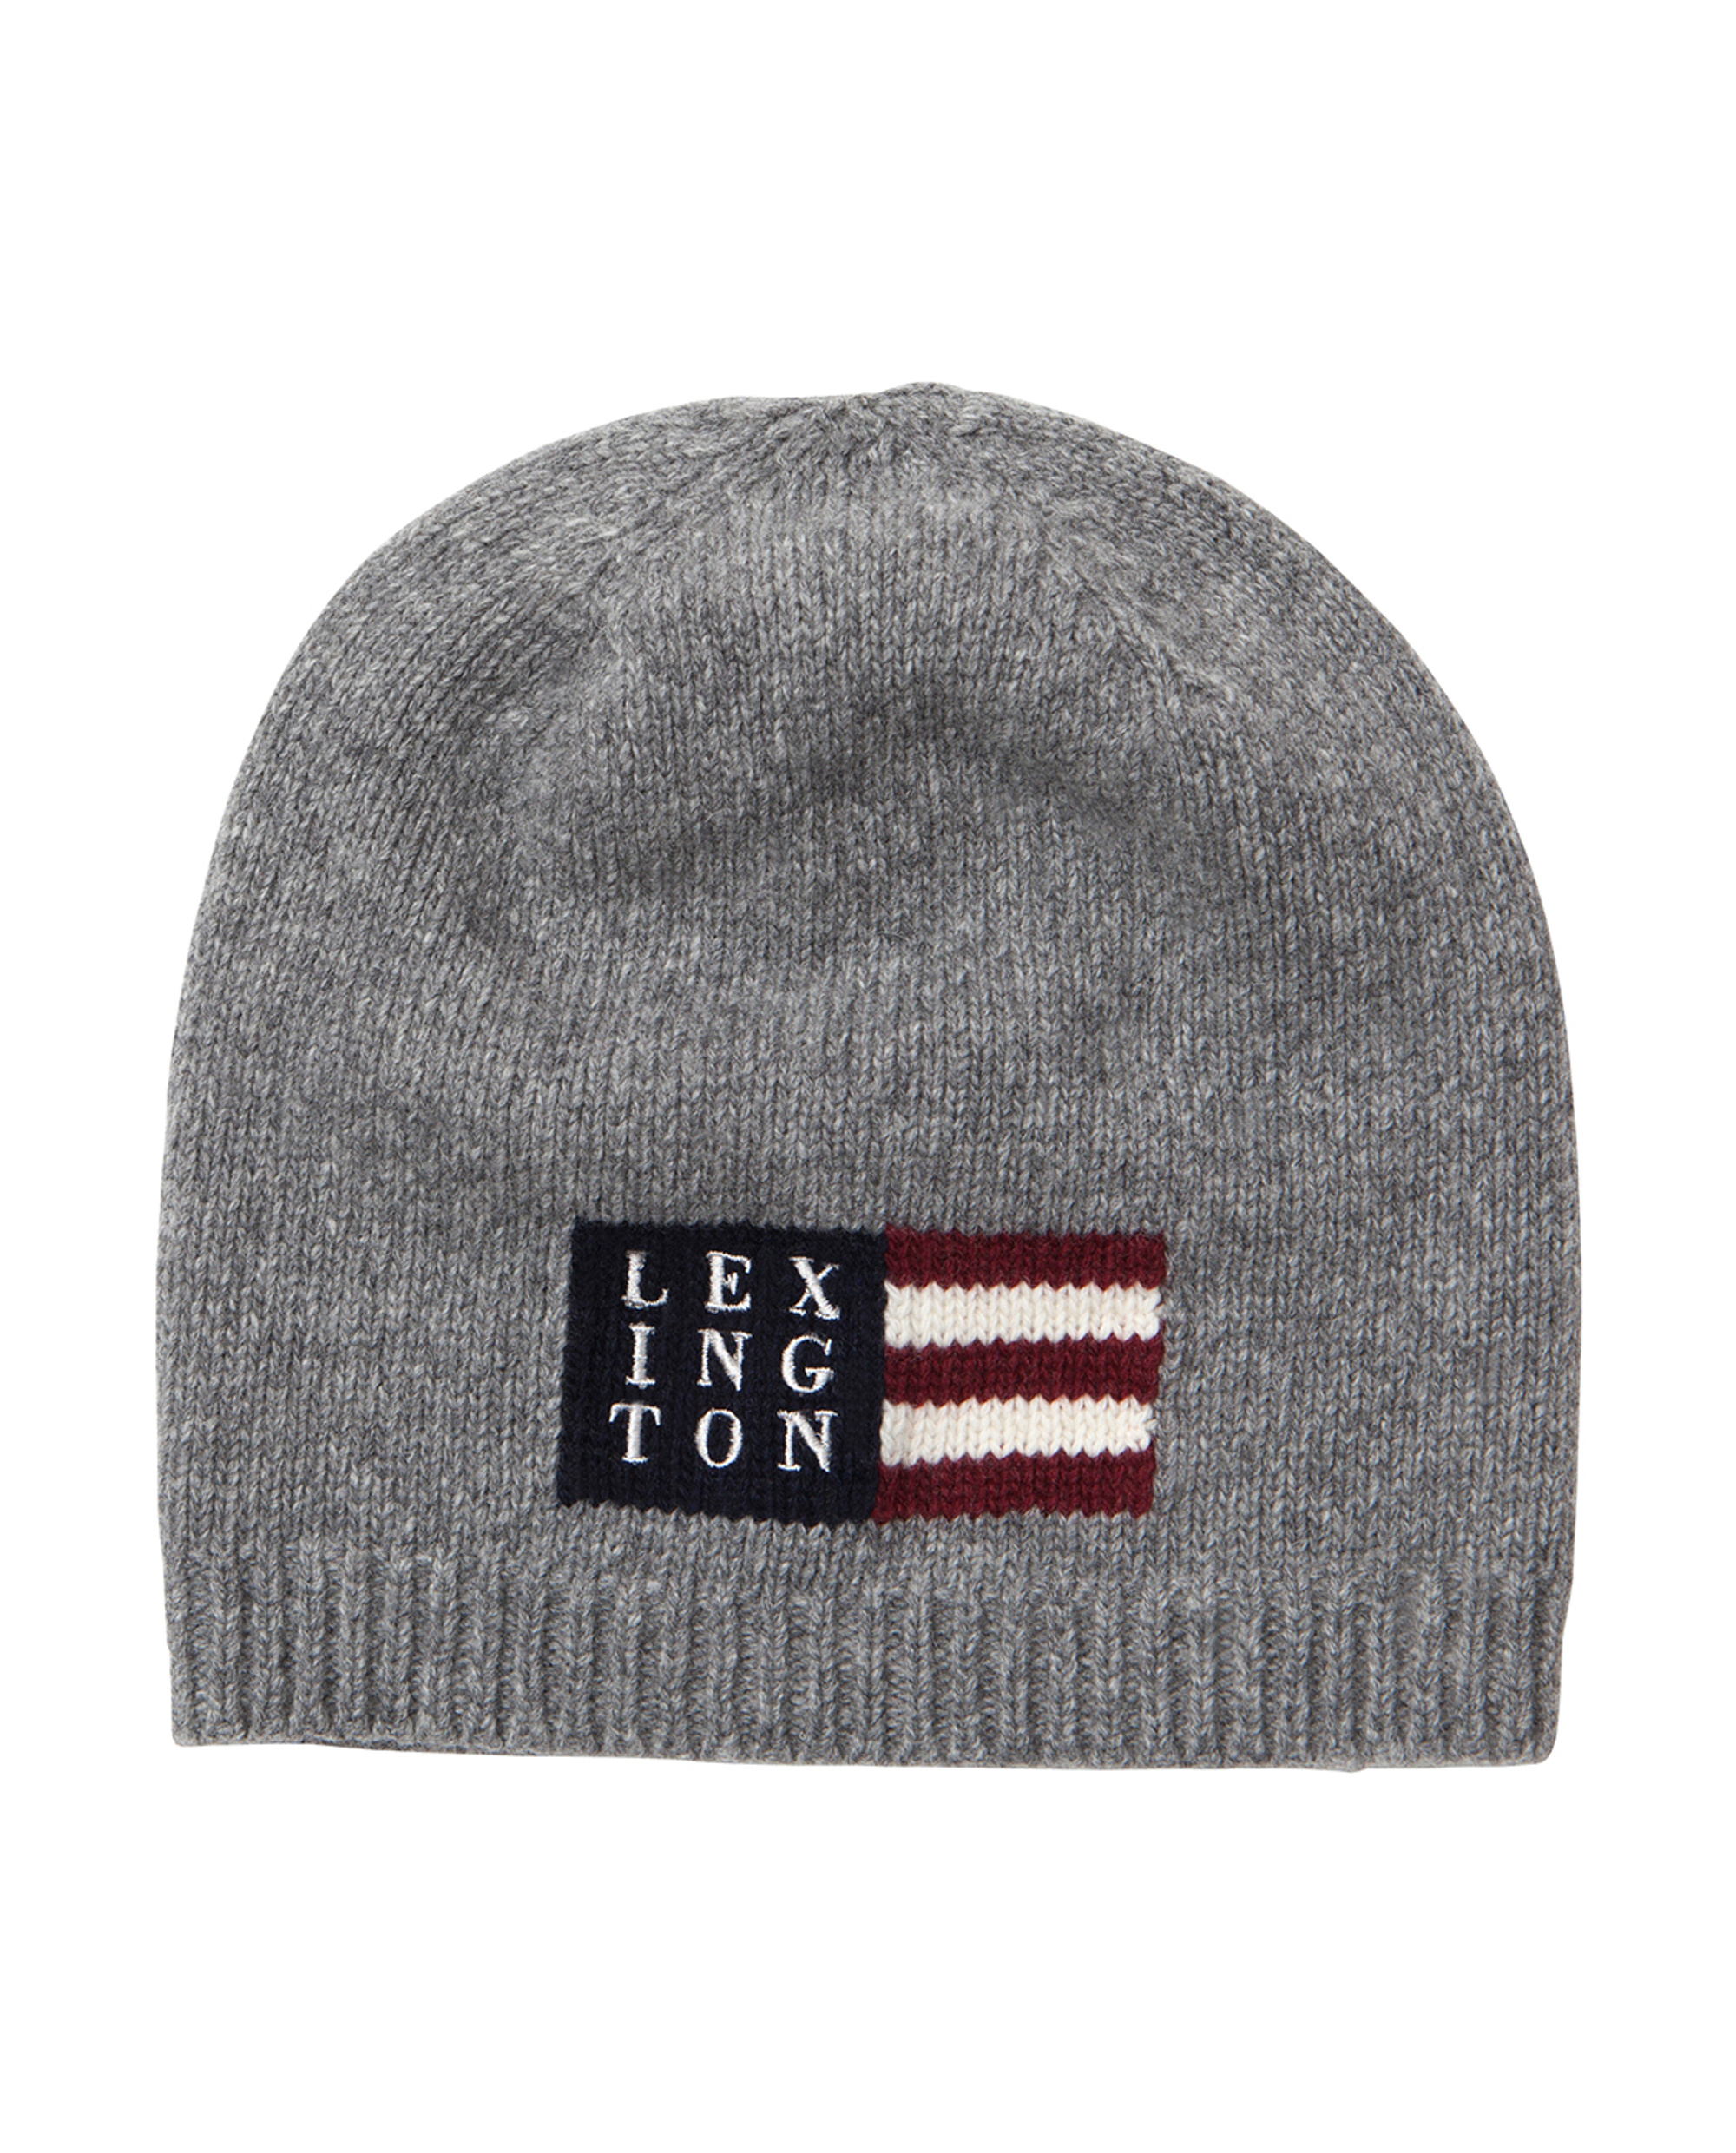 Westbrook Beanie, Dark Gray